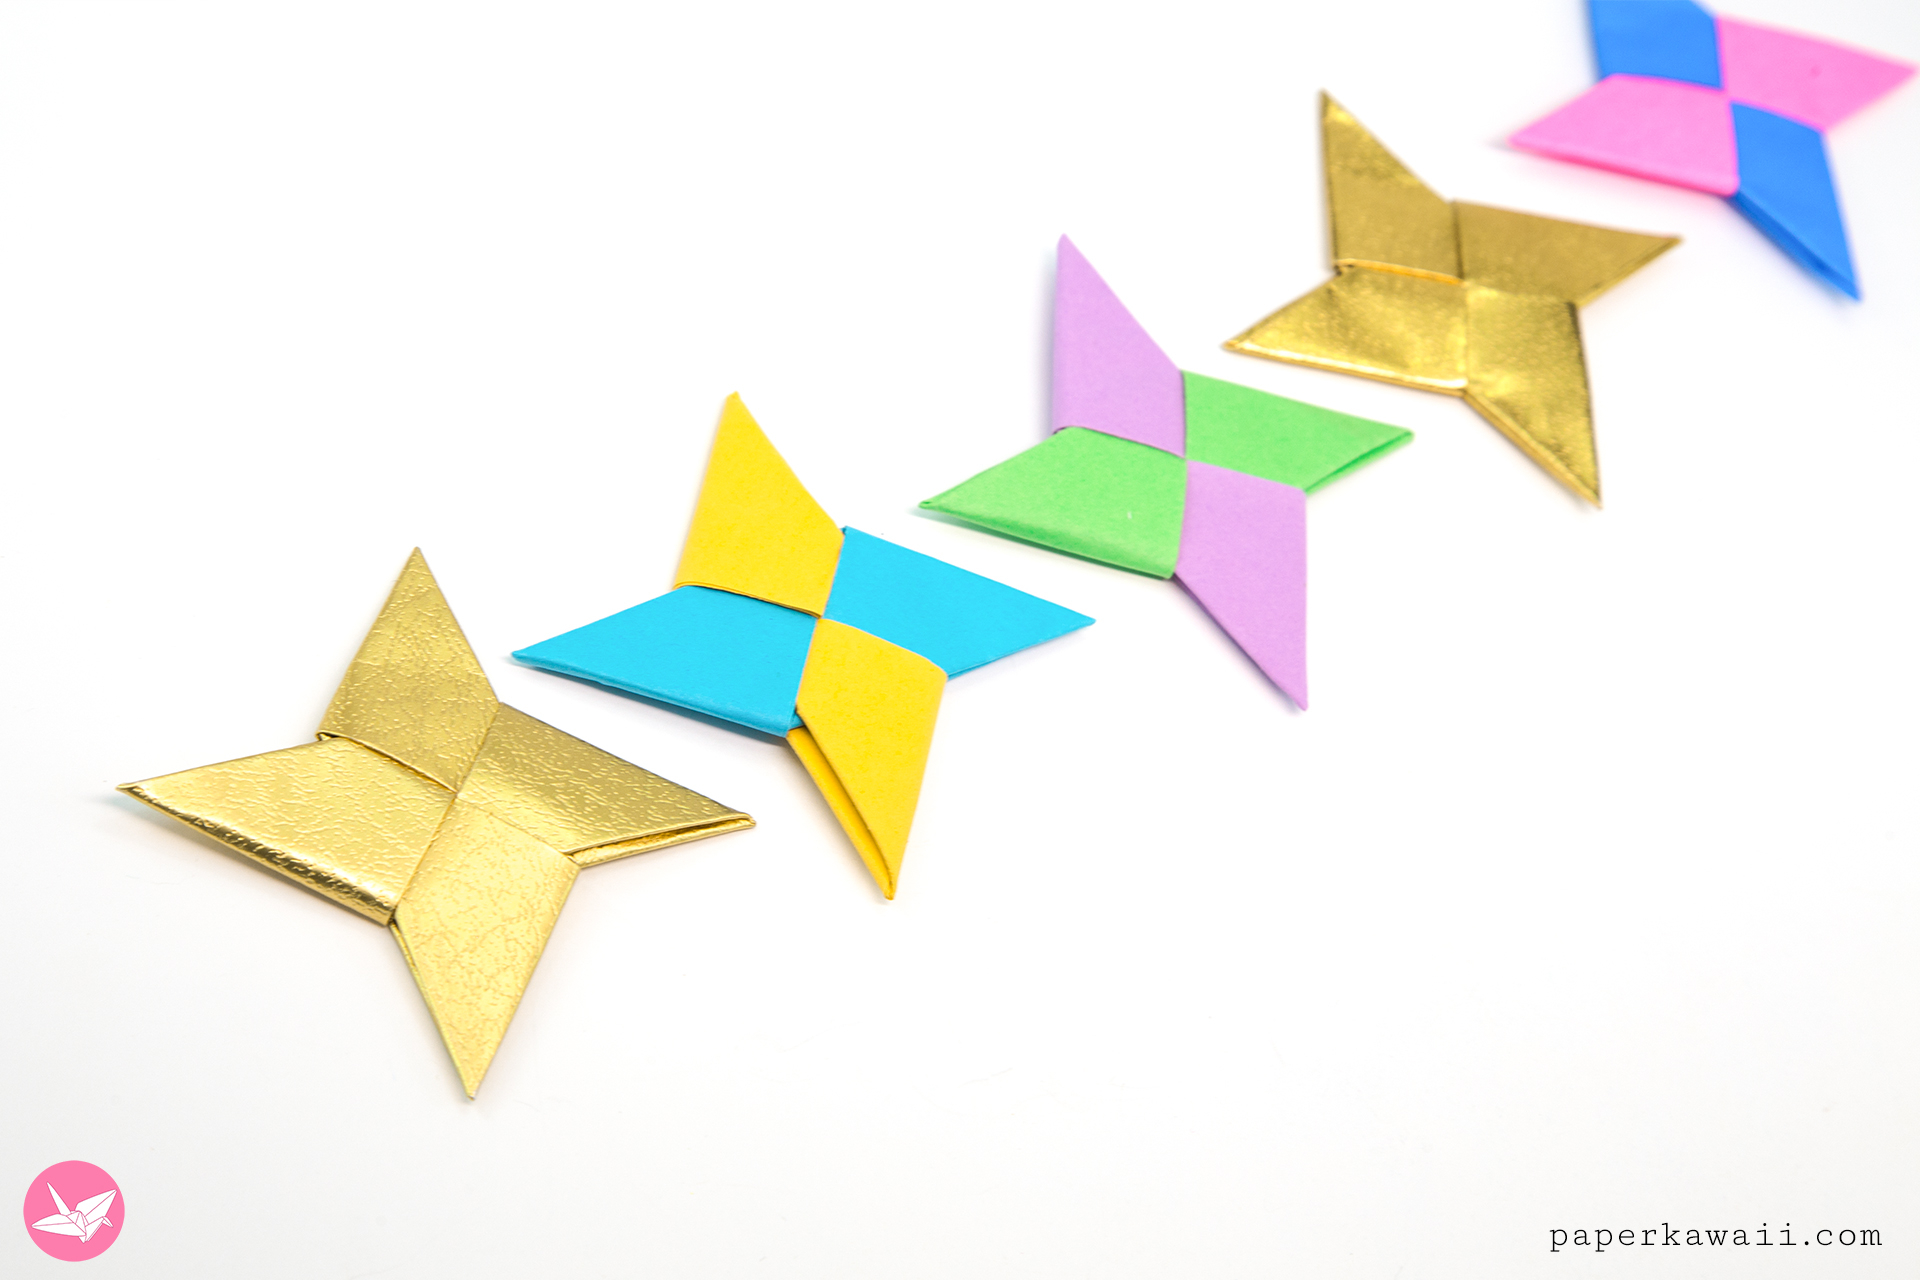 origami 3d stars | Images For Studyng HD | 1280x1920